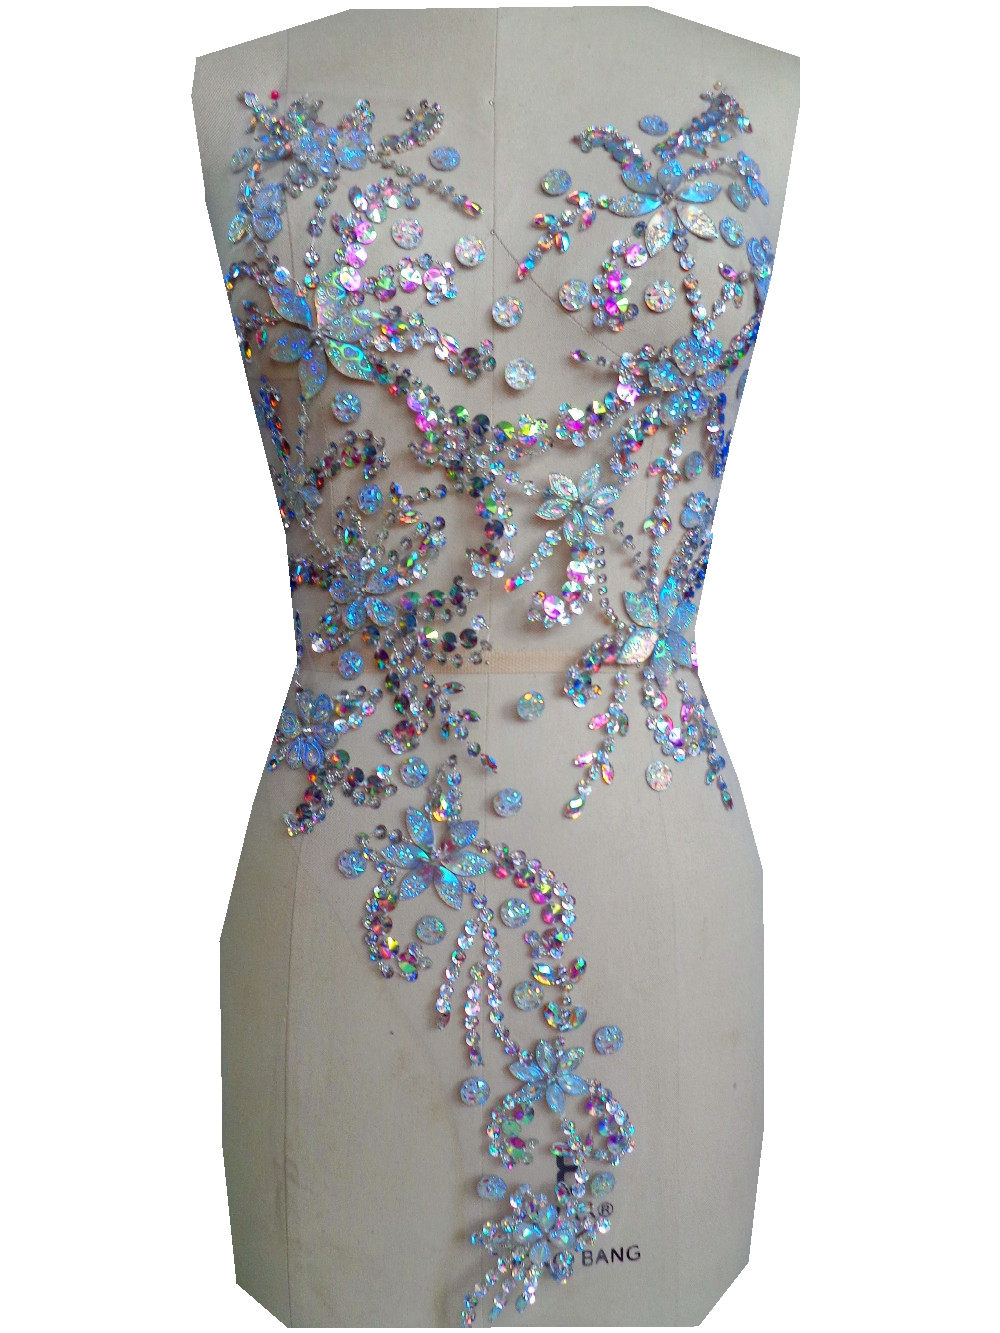 A5 Handmade Clear AB Colour Crystal  Patches Sew On  Rhinestones Applique With Stones Sequins Beads 60*30cm  For  Dress